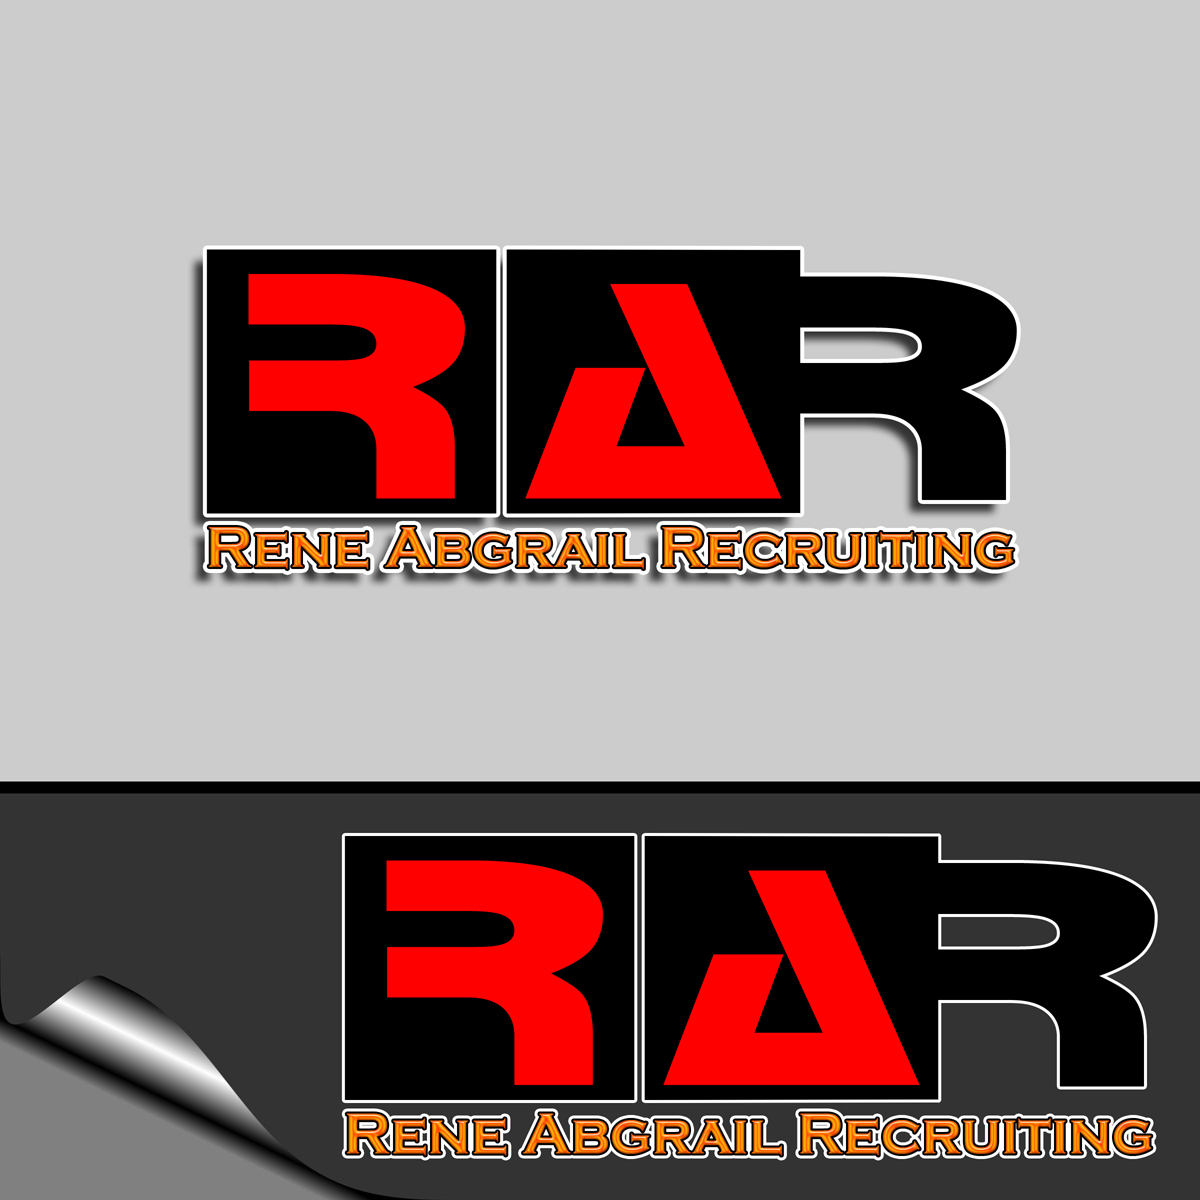 Logo Design by MITUCA ANDREI - Entry No. 5 in the Logo Design Contest Artistic Logo Design for René Abgrall Recruiting.